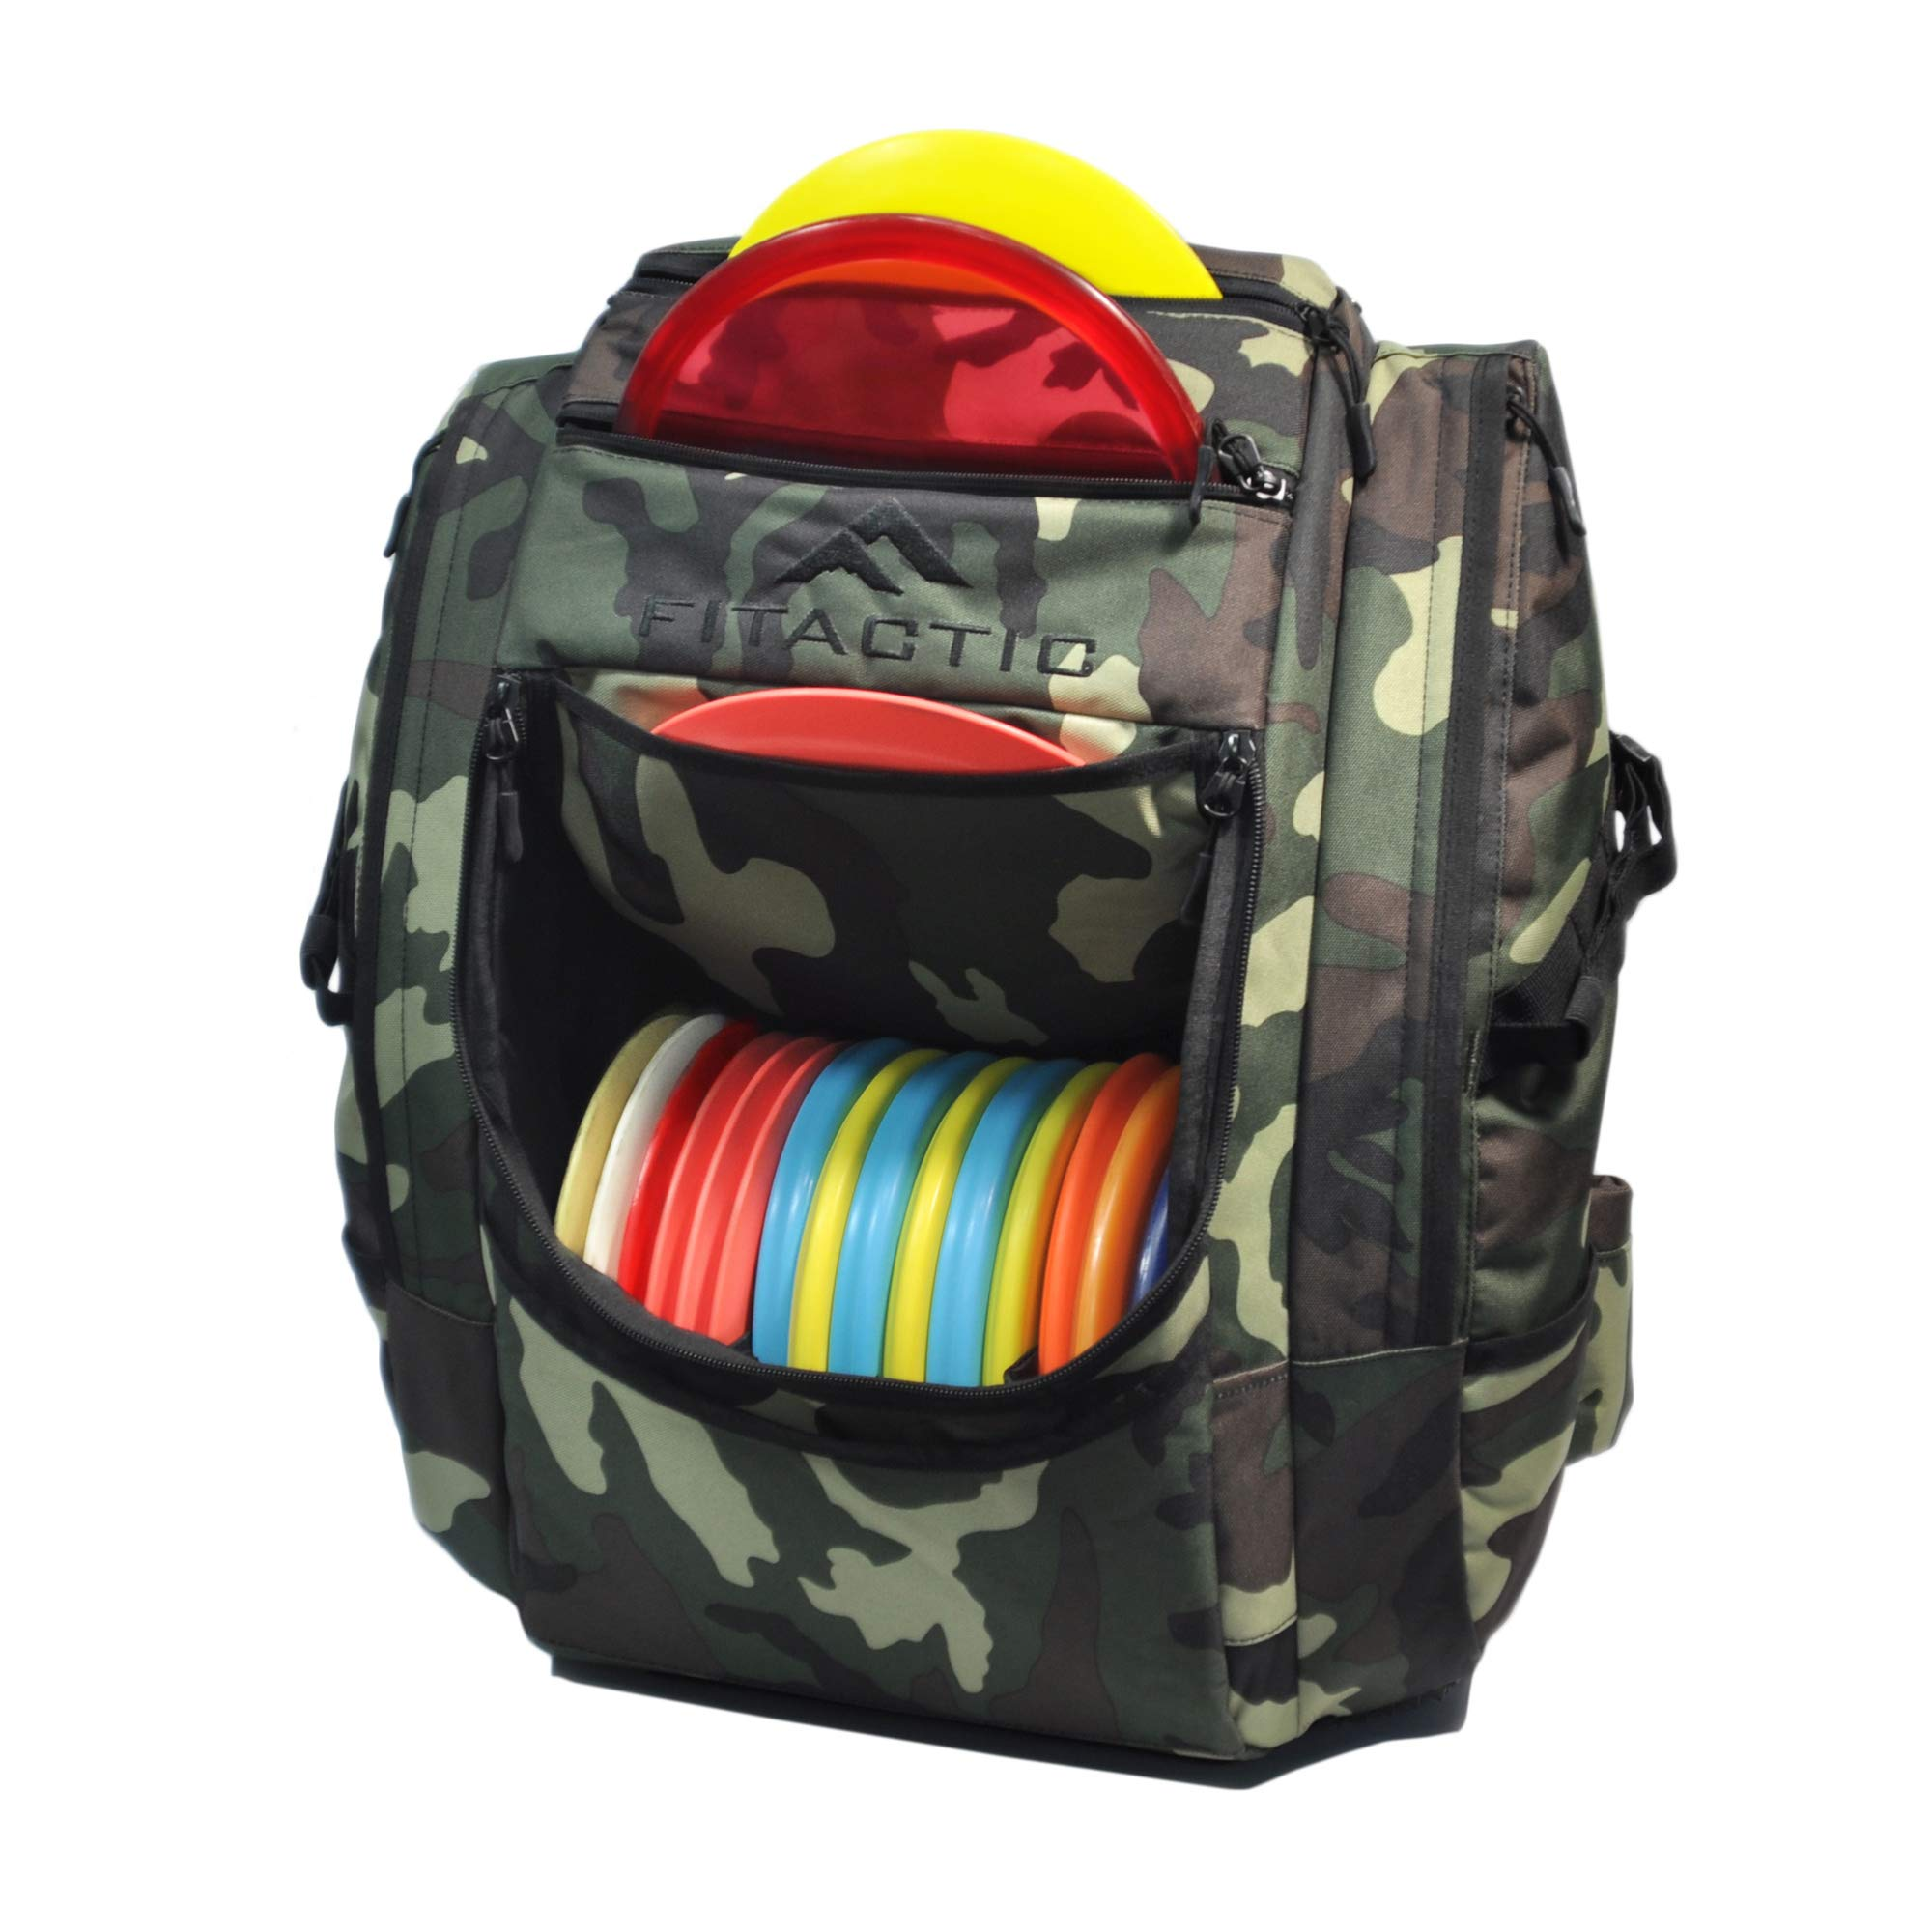 FITactic Luxury Frisbee Disc Golf Bag Backpack (Capacity: 25-30 Discs, Woodland Camouflage) by FITactic